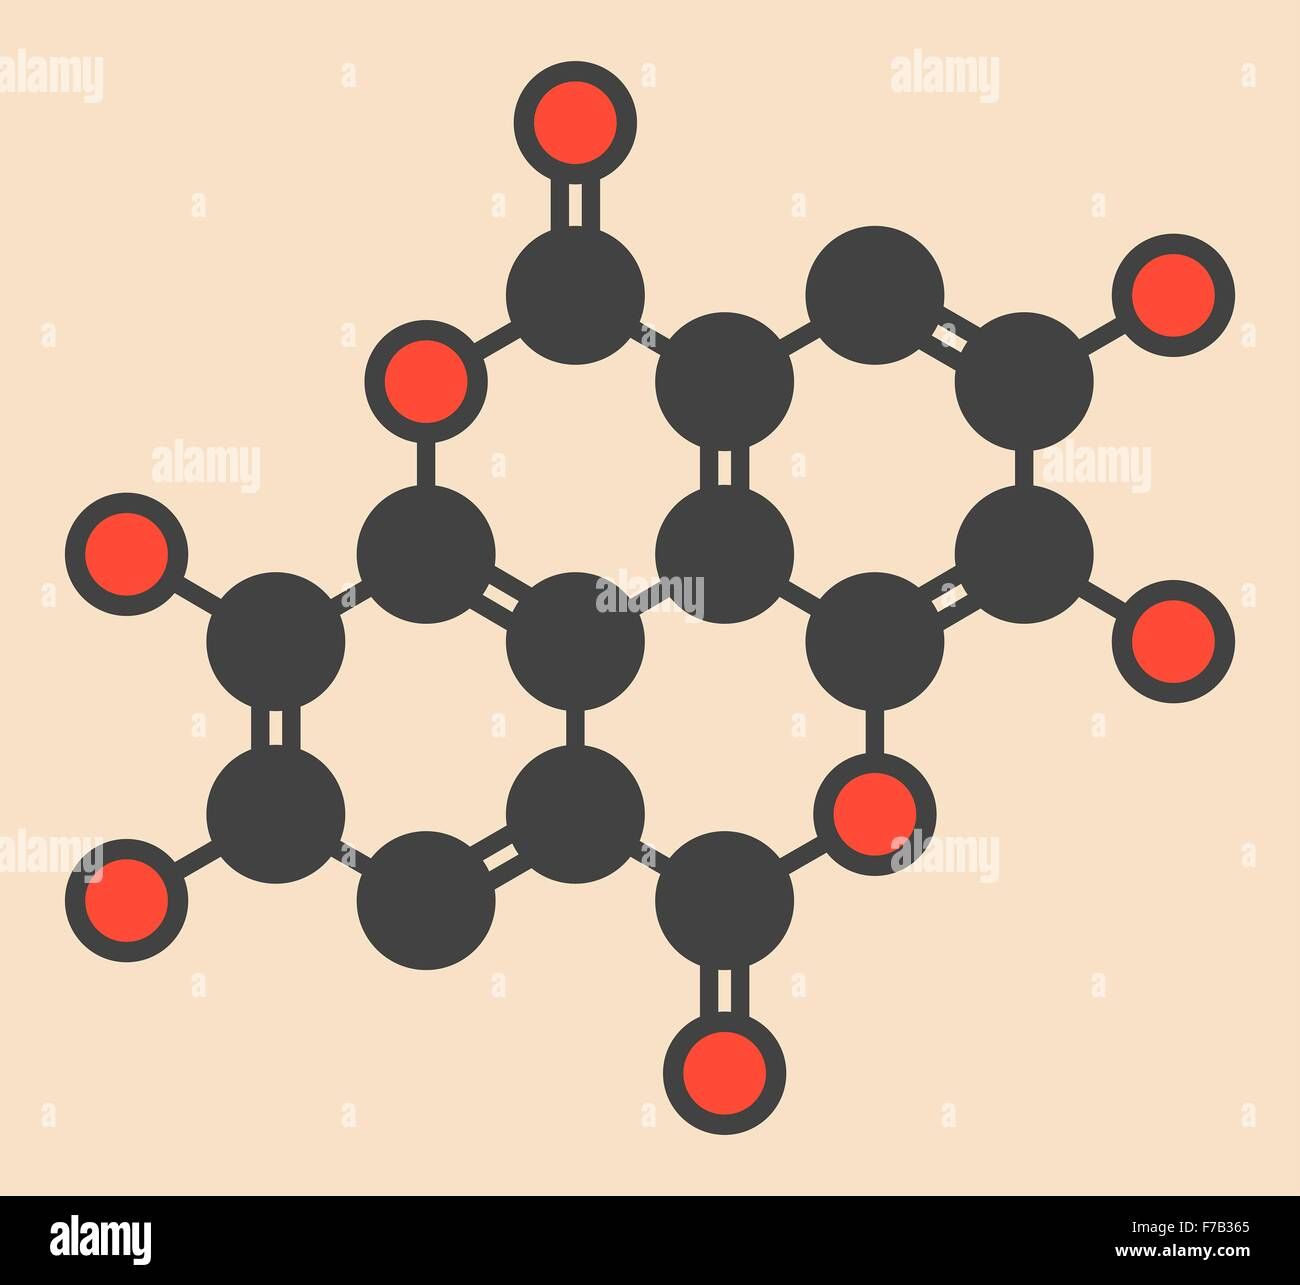 Ellagic acid dietary supplement molecule. Stylized skeletal formula (chemical structure). Atoms are shown as color - Stock Image